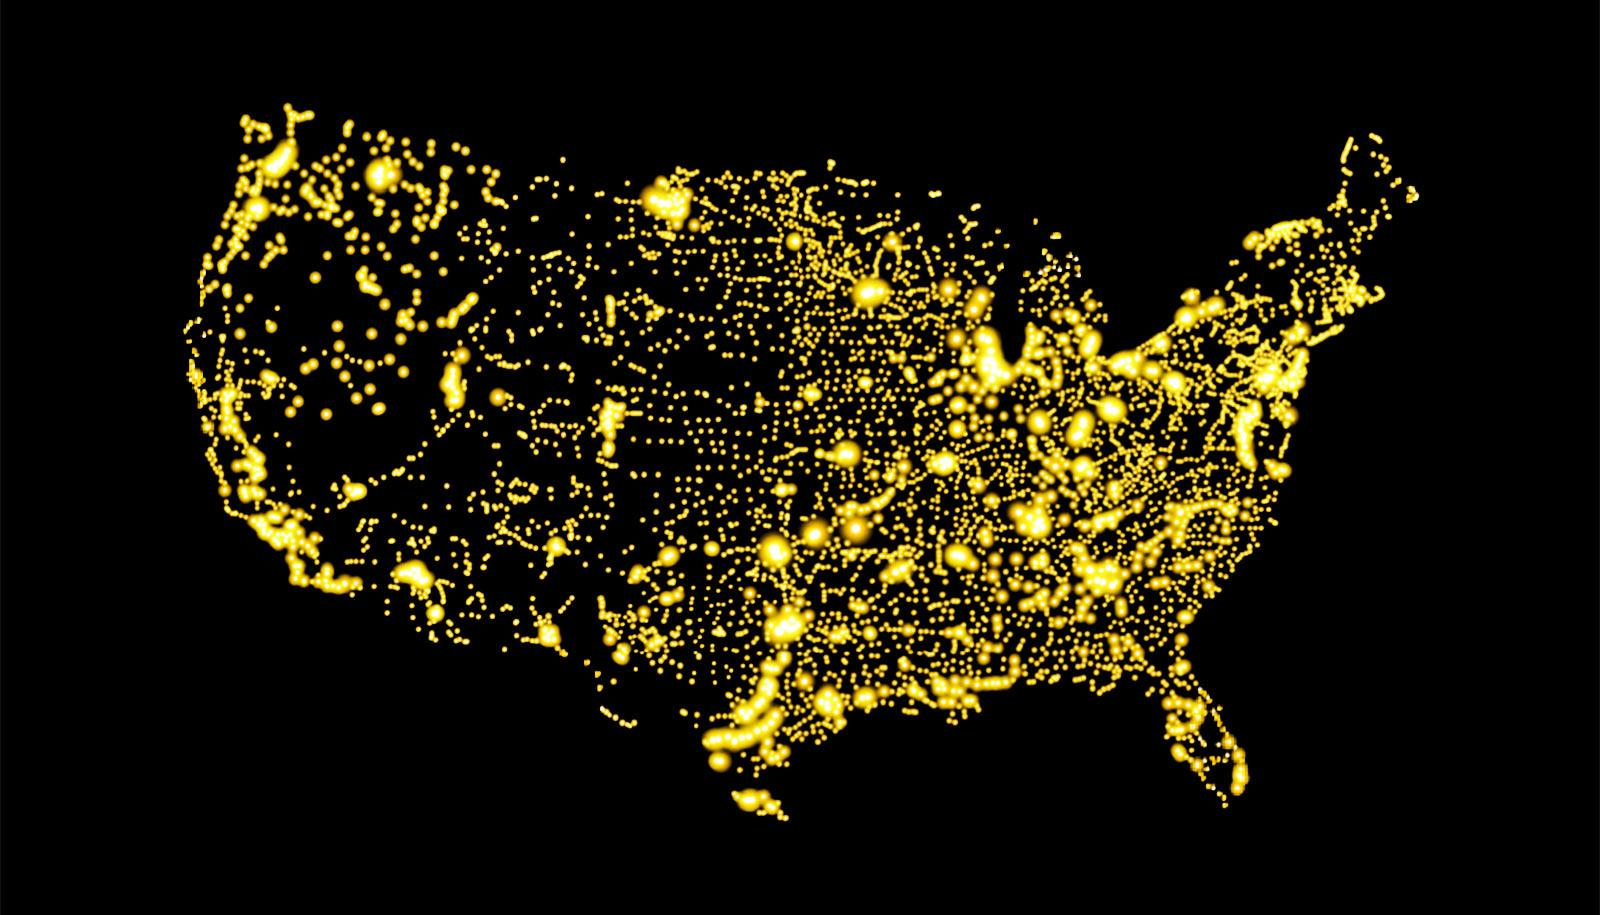 A map of the US in lights against black